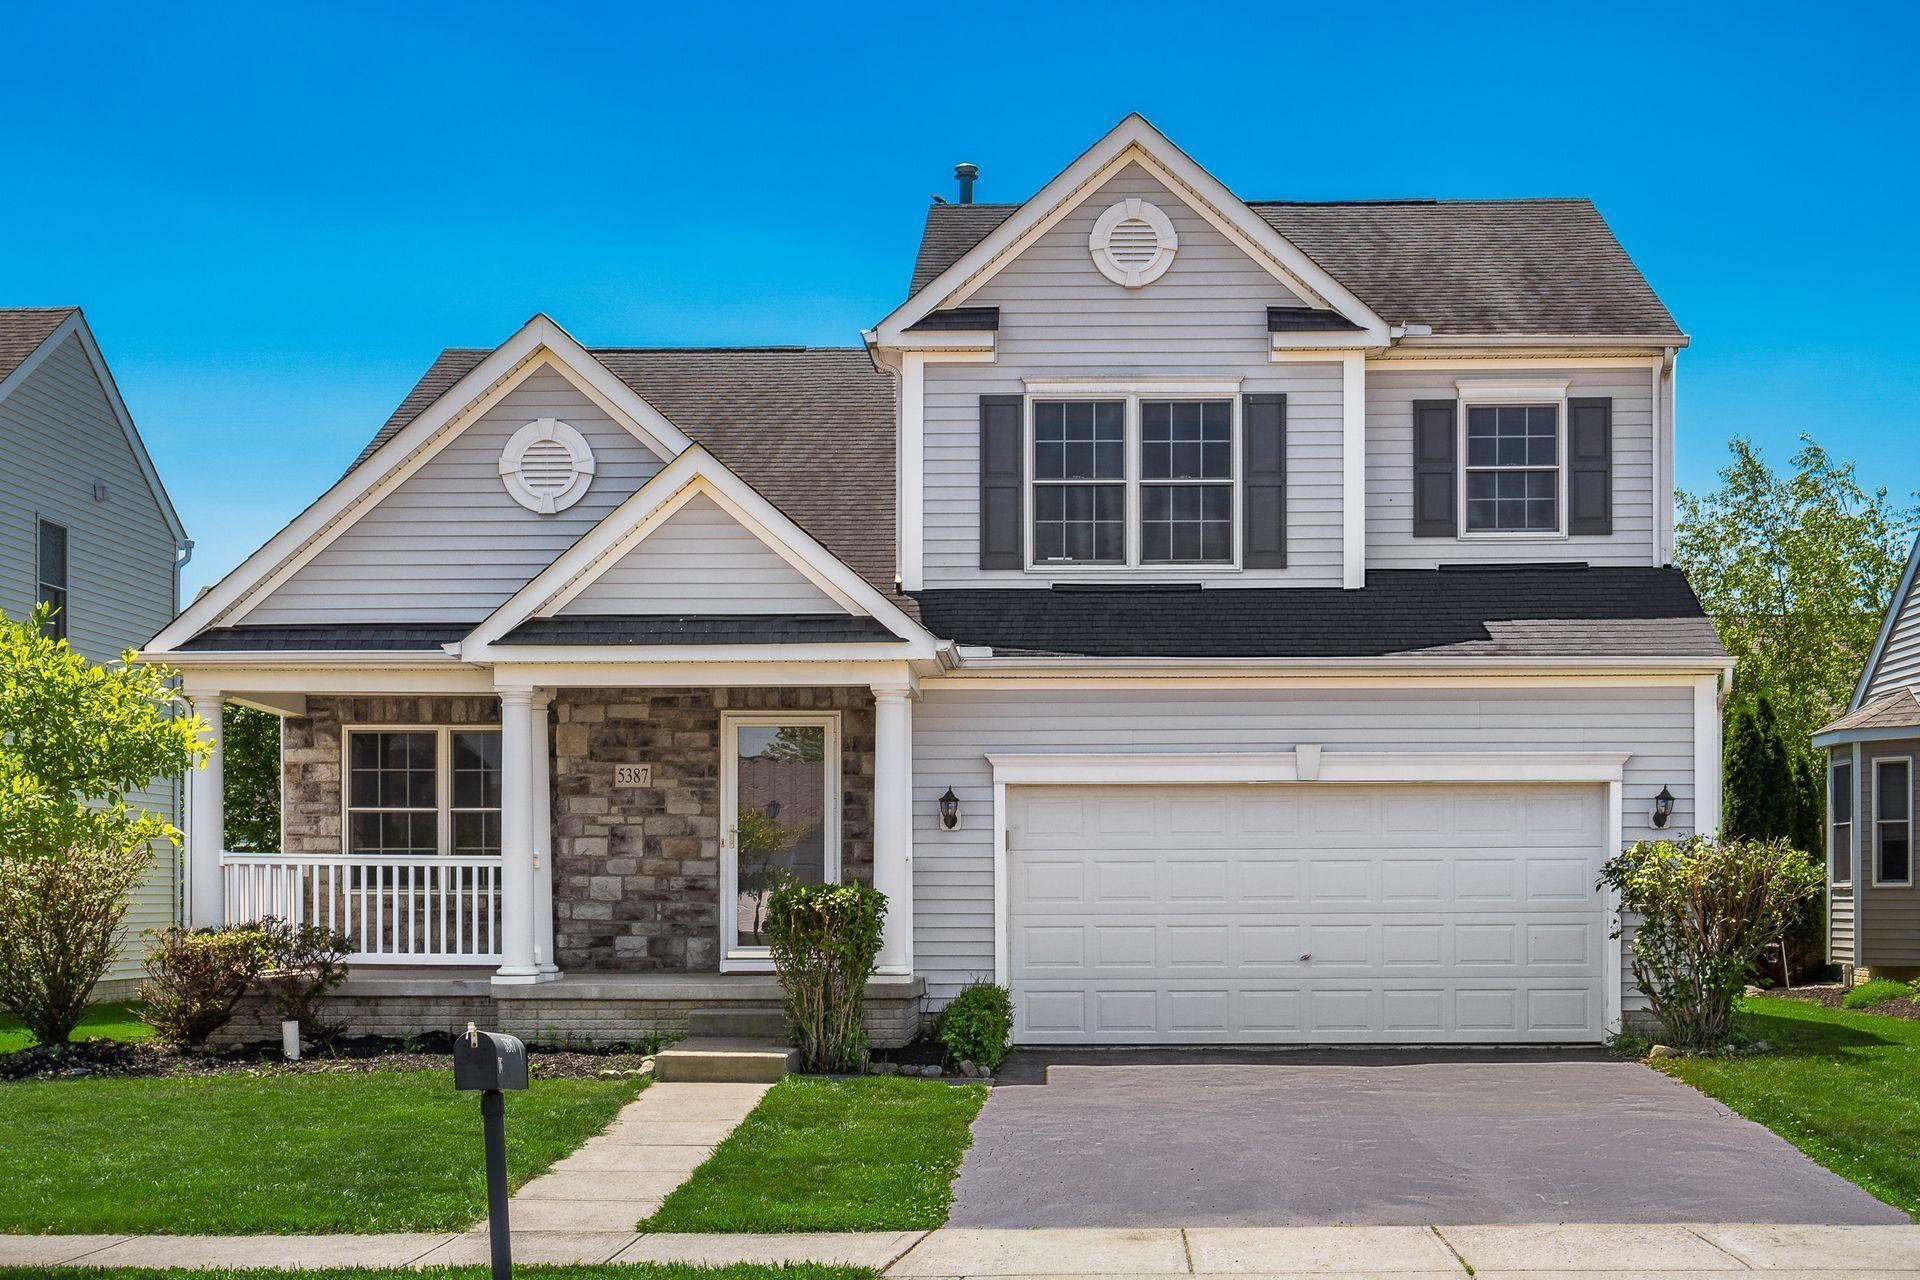 Photo of 5387 Red Water Drive, Dublin, OH 43016 (MLS # 221021864)